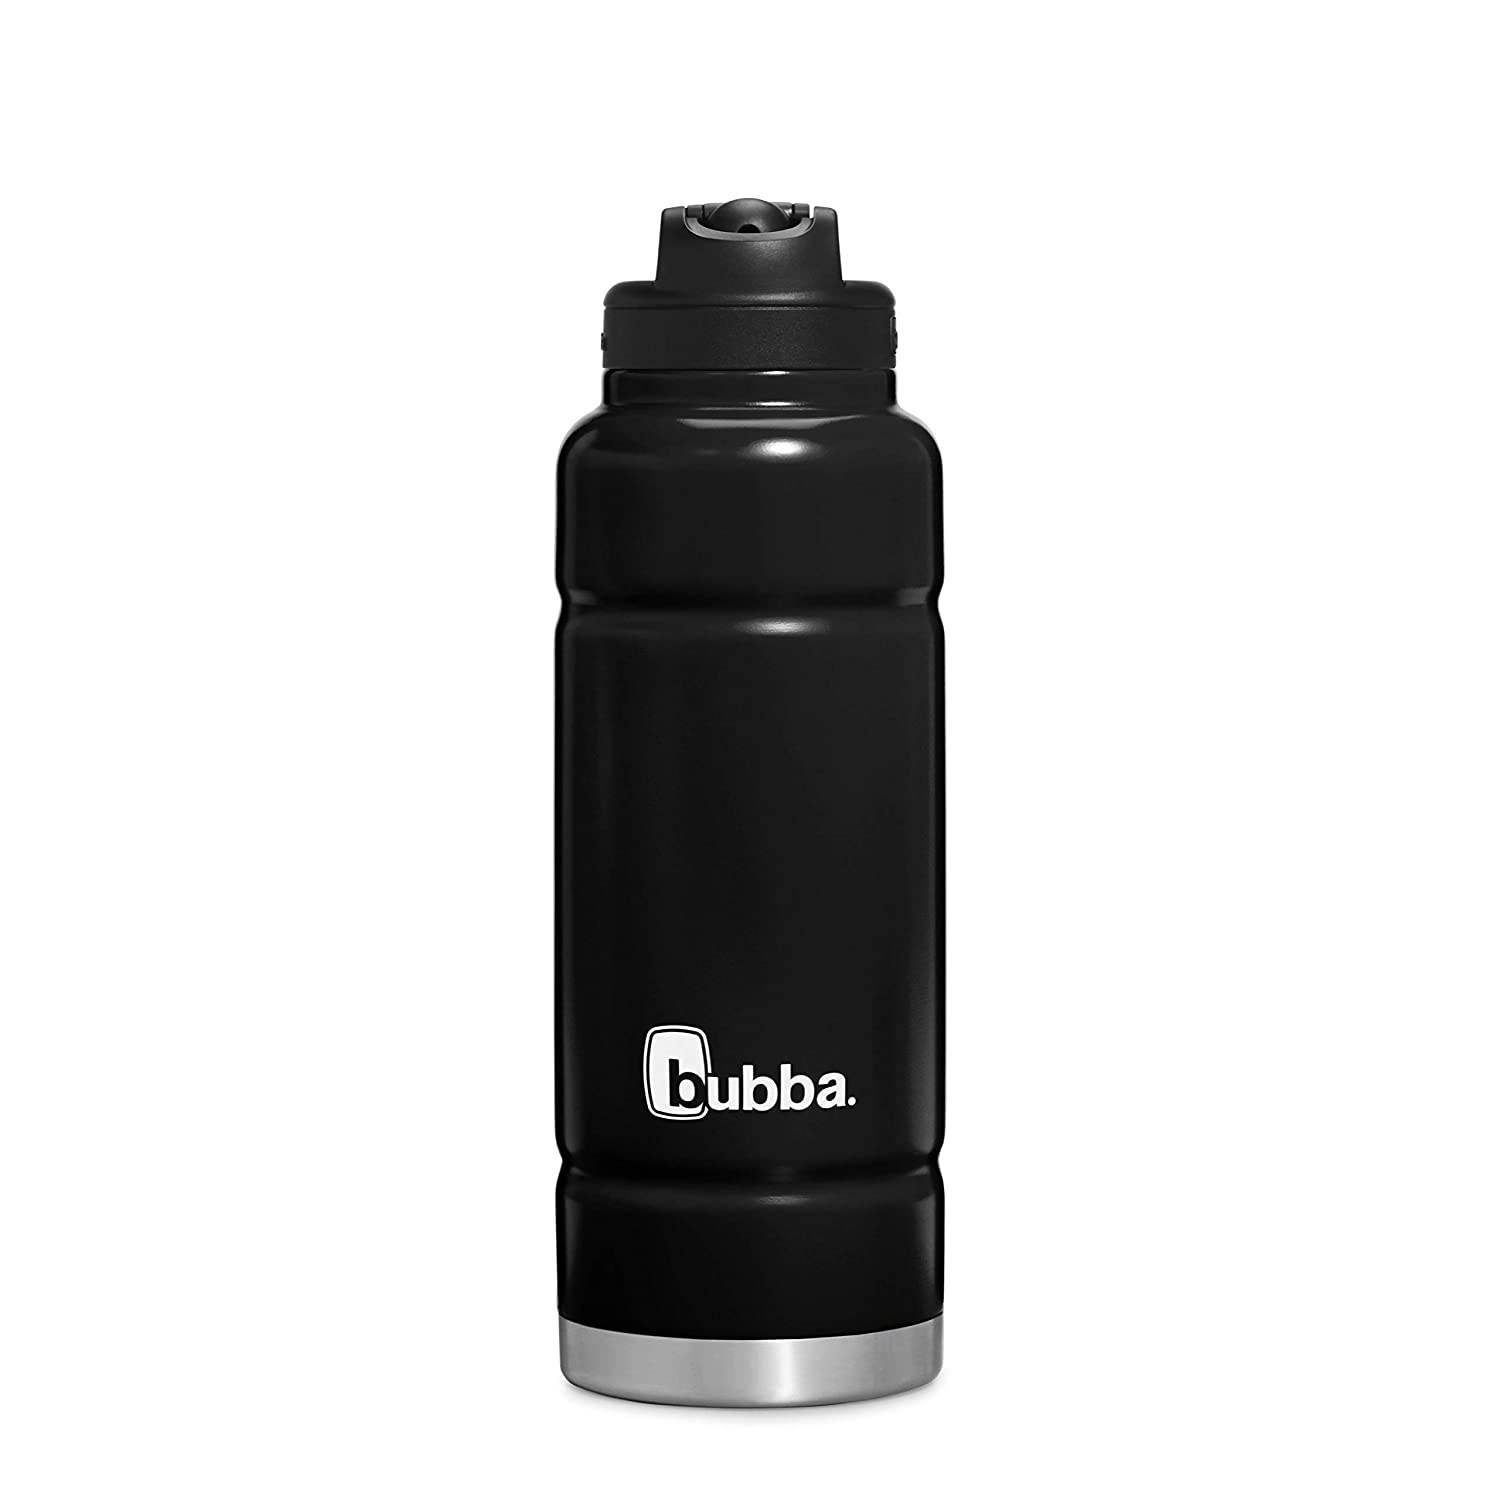 bubba 2079041 Trailblazer Water Bottle, 40 oz, Licorice